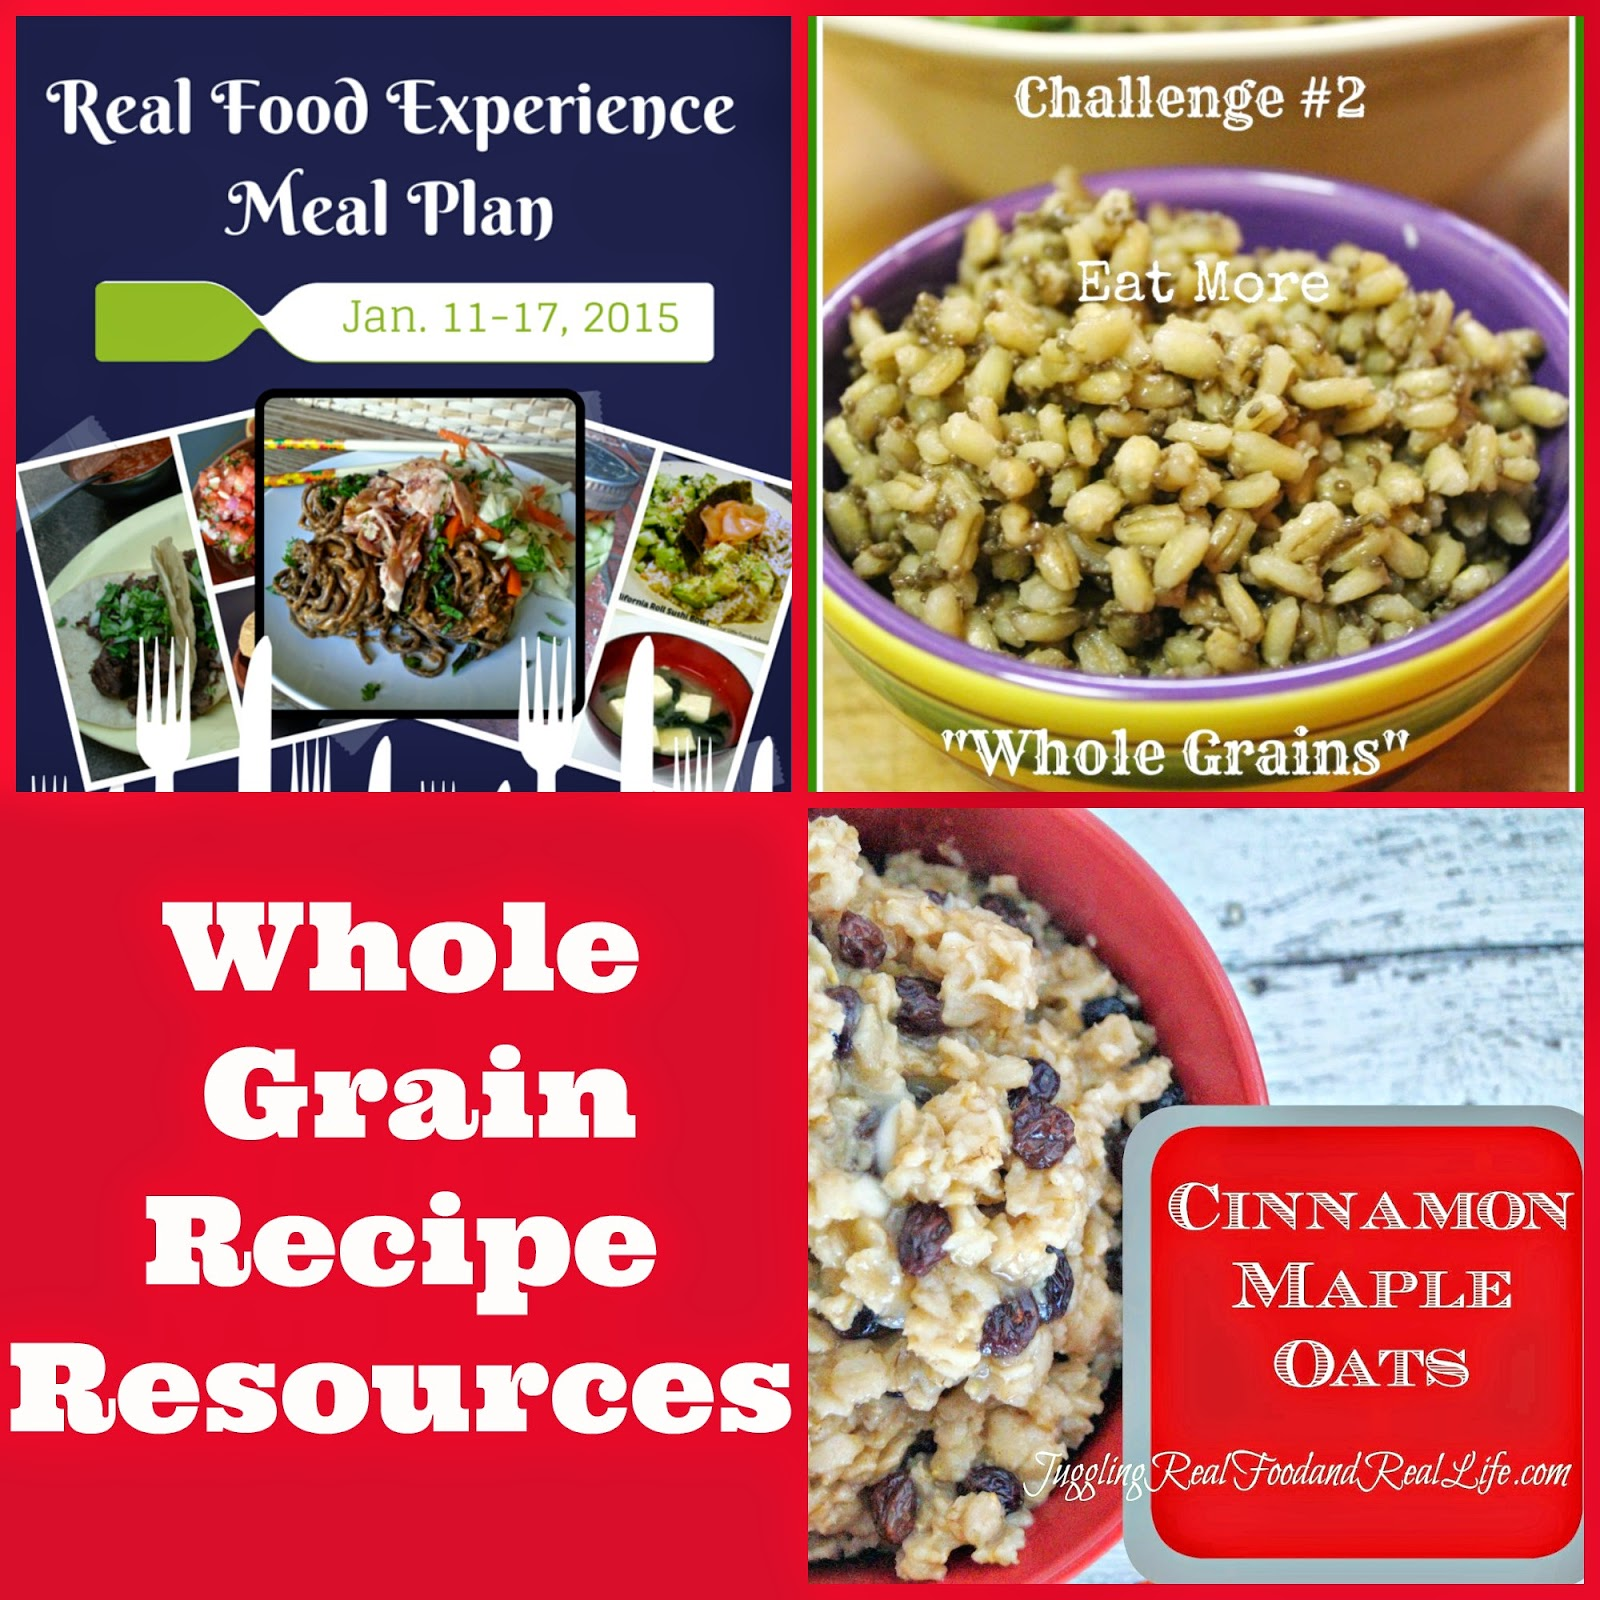 Real Food Experience – Whole Grain Recipe Resources